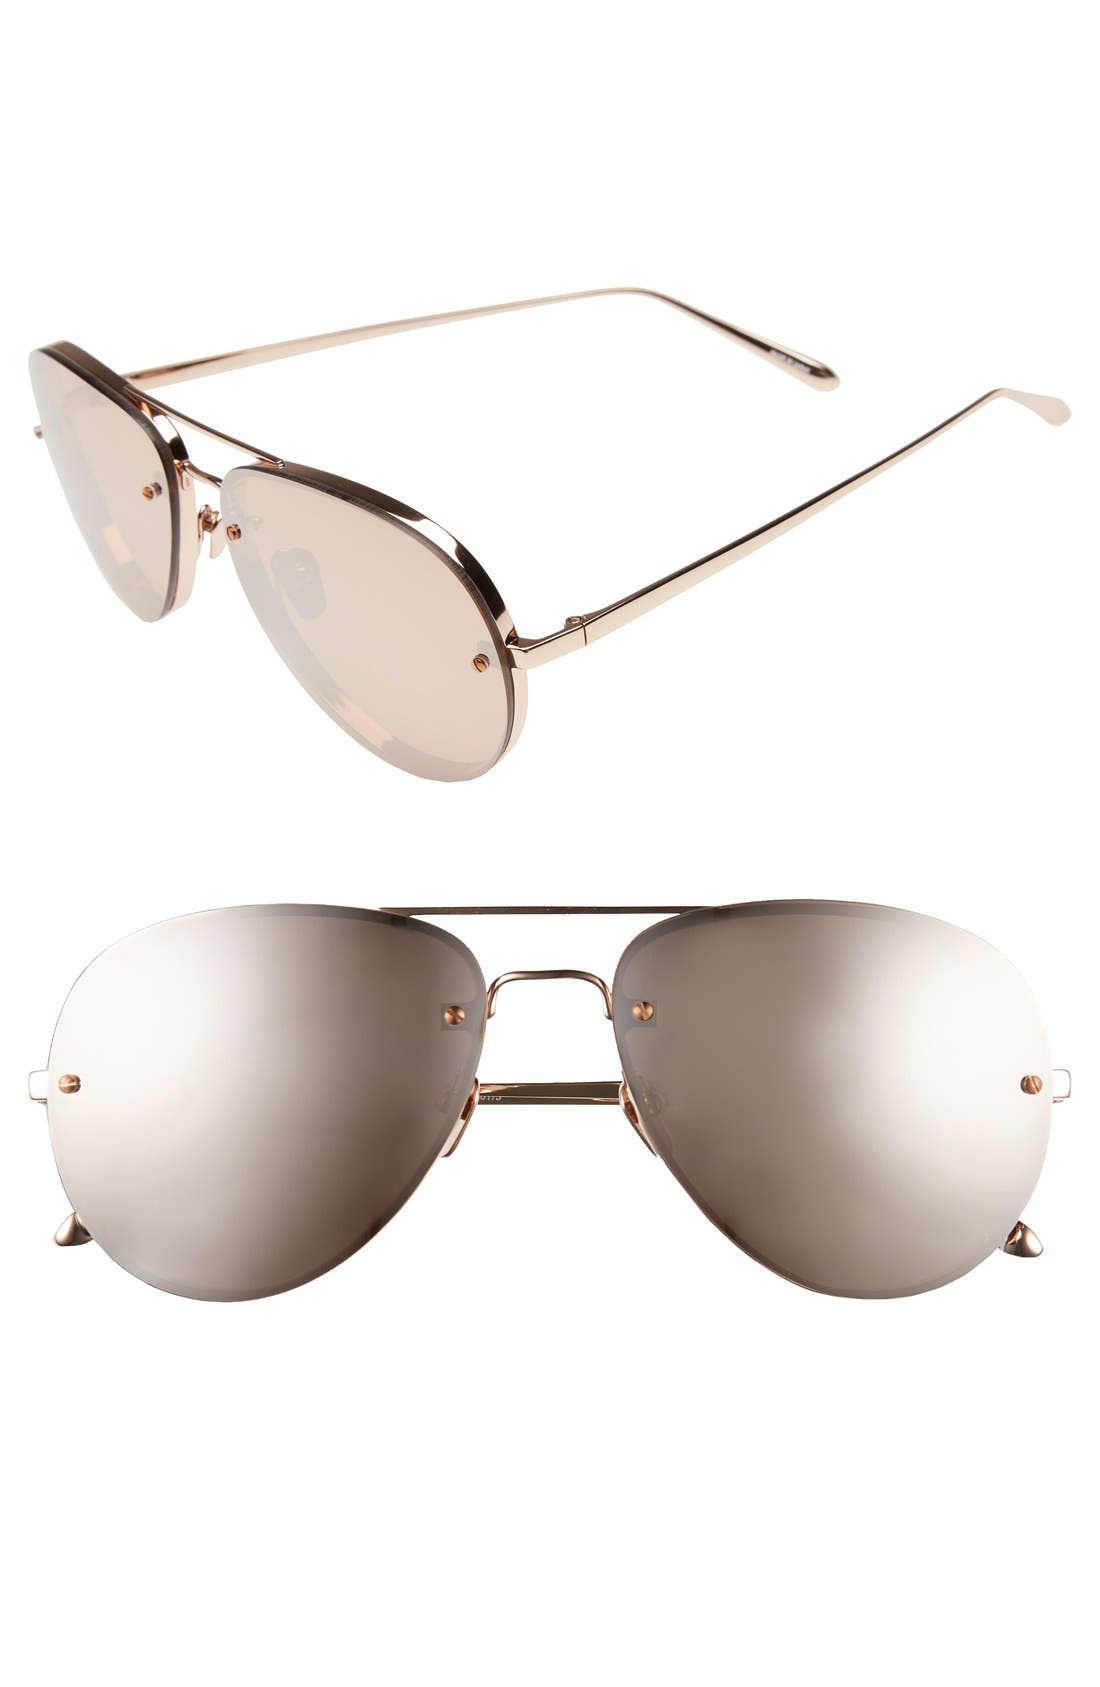 Main Image - Linda Farrow 59mm Aviator 18 Karat Rose Gold Trim Sunglasses